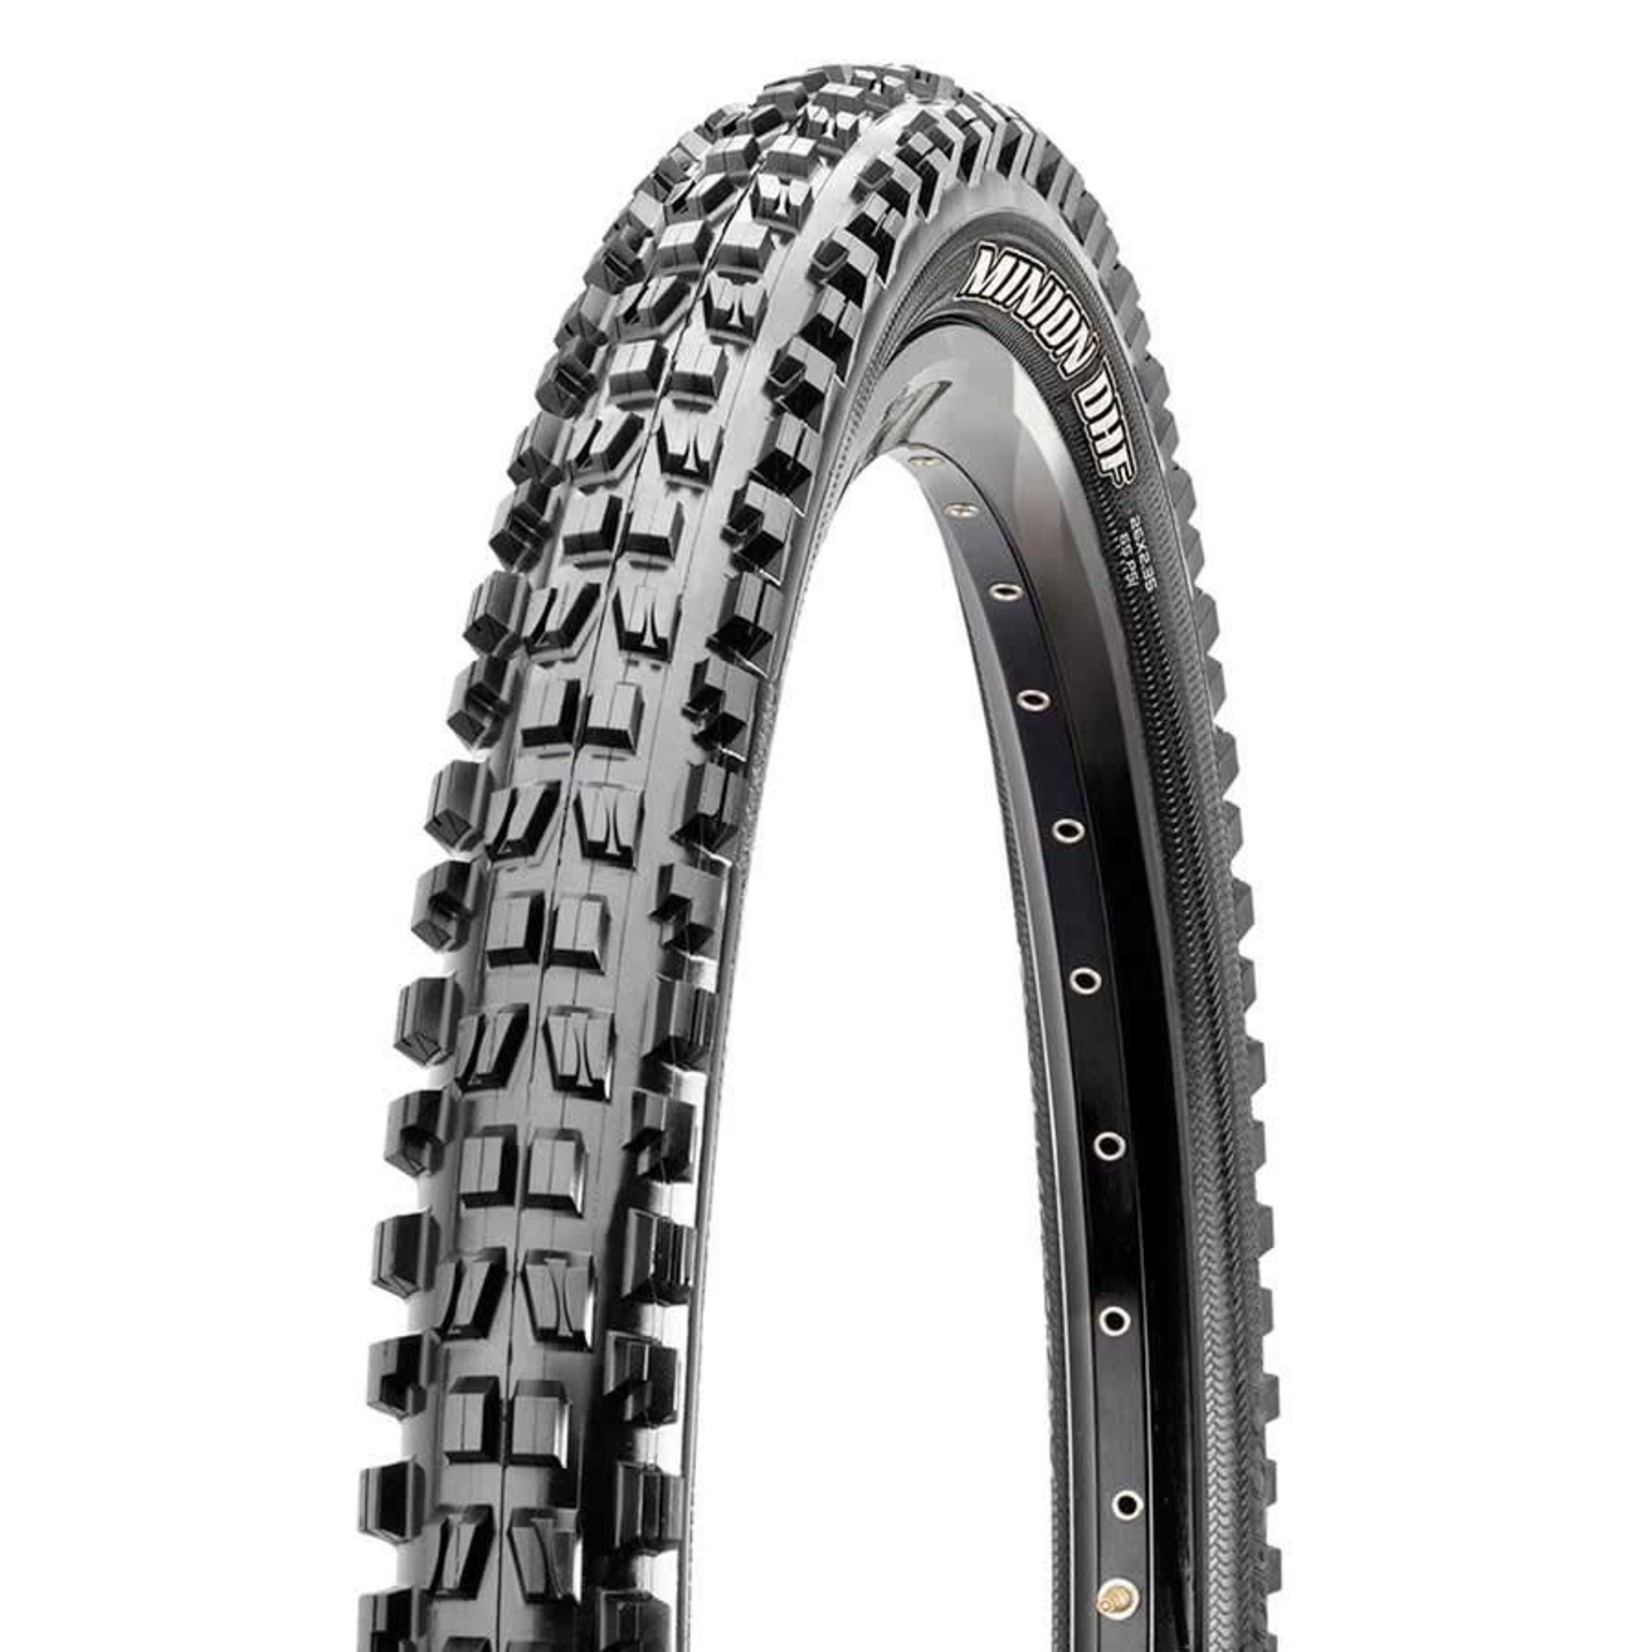 Maxxis Minion DHF, 27.5x2.50, Pliable, 3C Maxx Grip, EXO, Wide Trail, Tubeless Ready, 60TPI, 50PSI, 980g, Noir